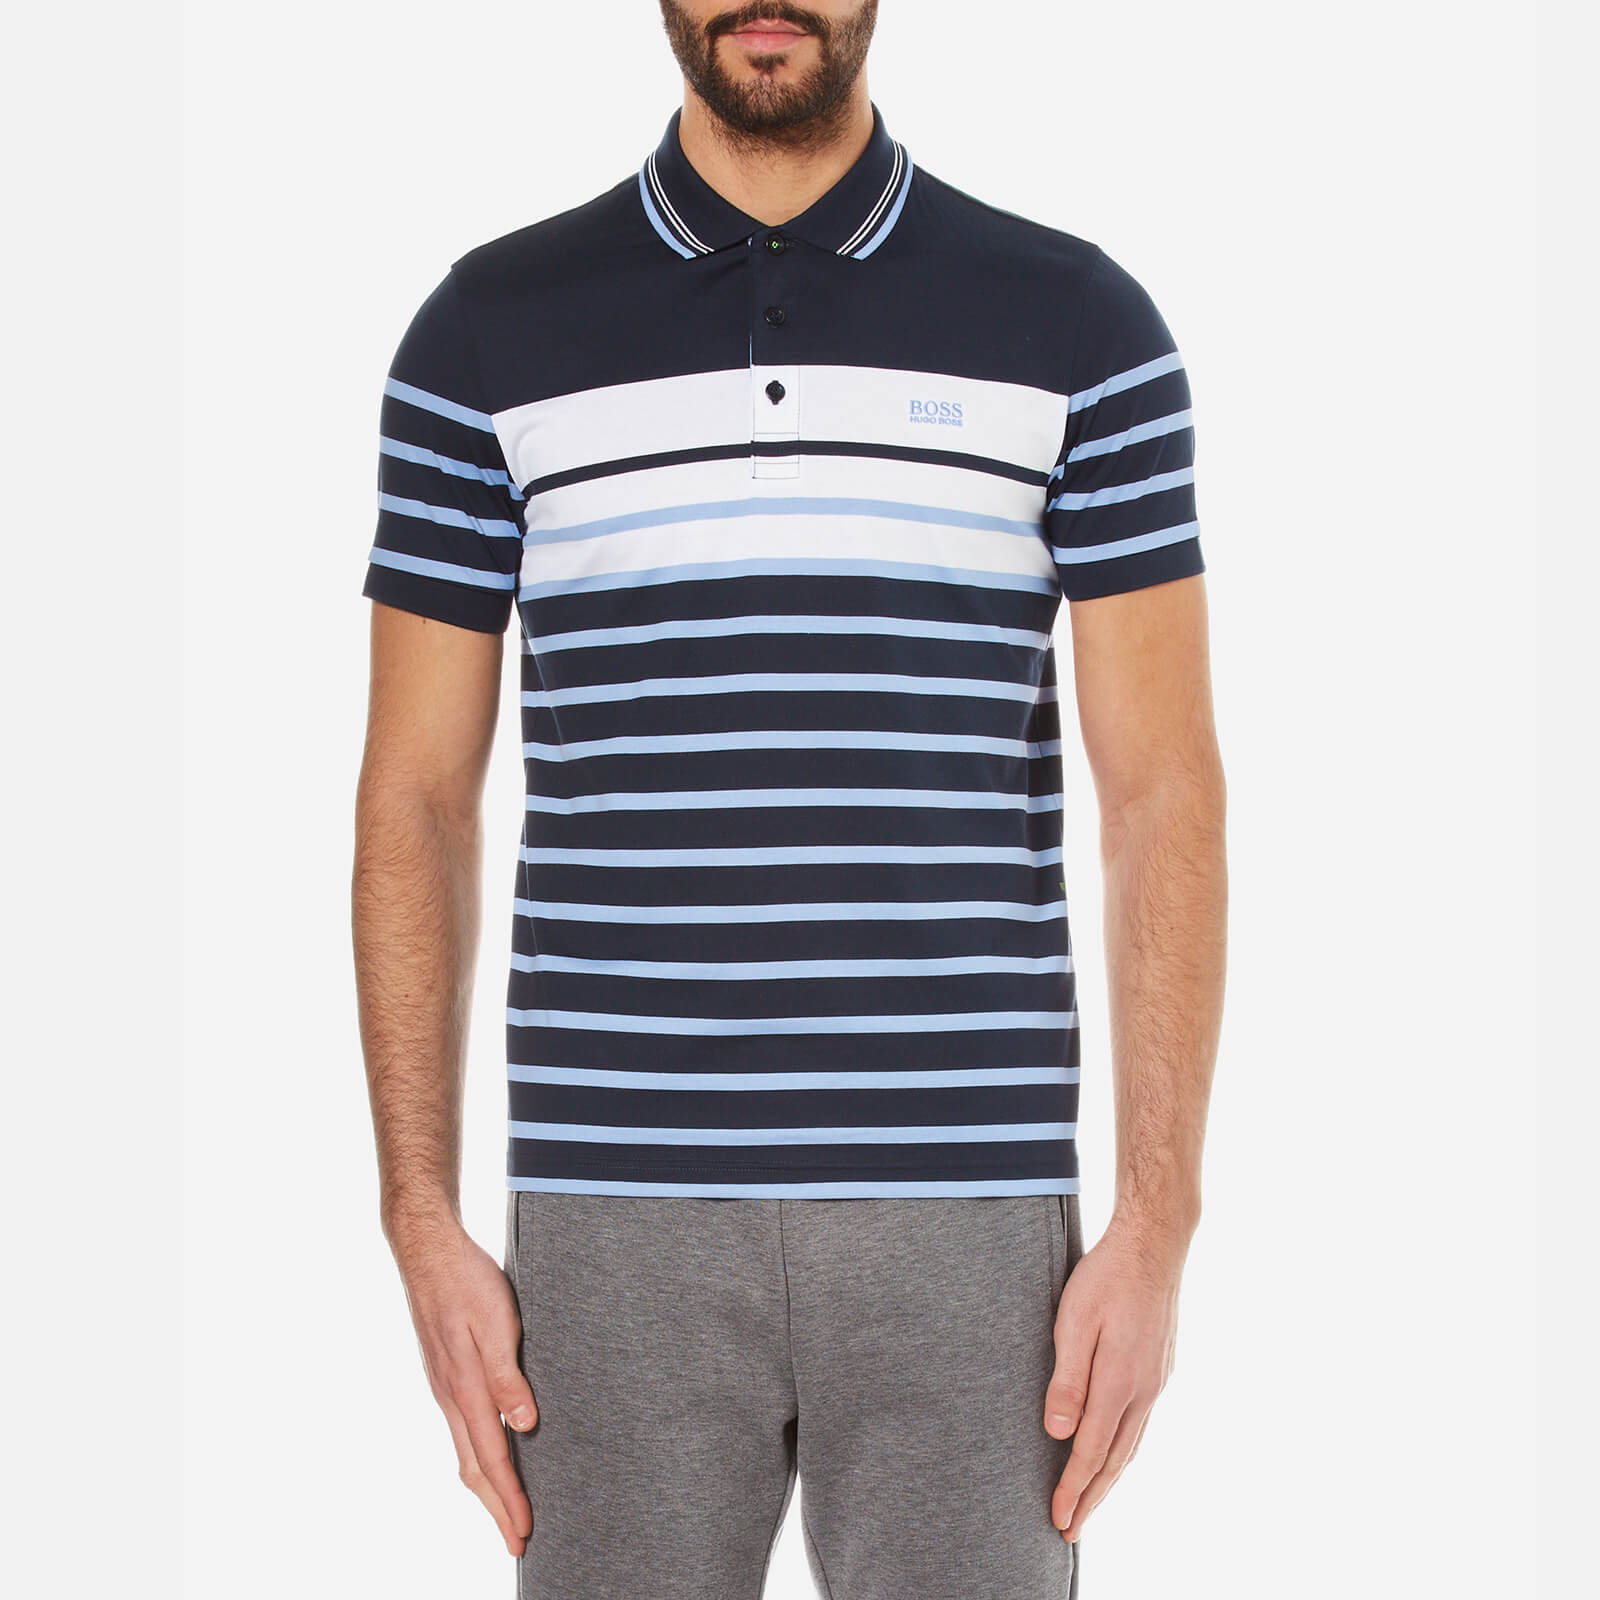 a7673343 BOSS Green Men's Paule 3 Striped Polo Shirt - Navy - Free UK Delivery over  £50